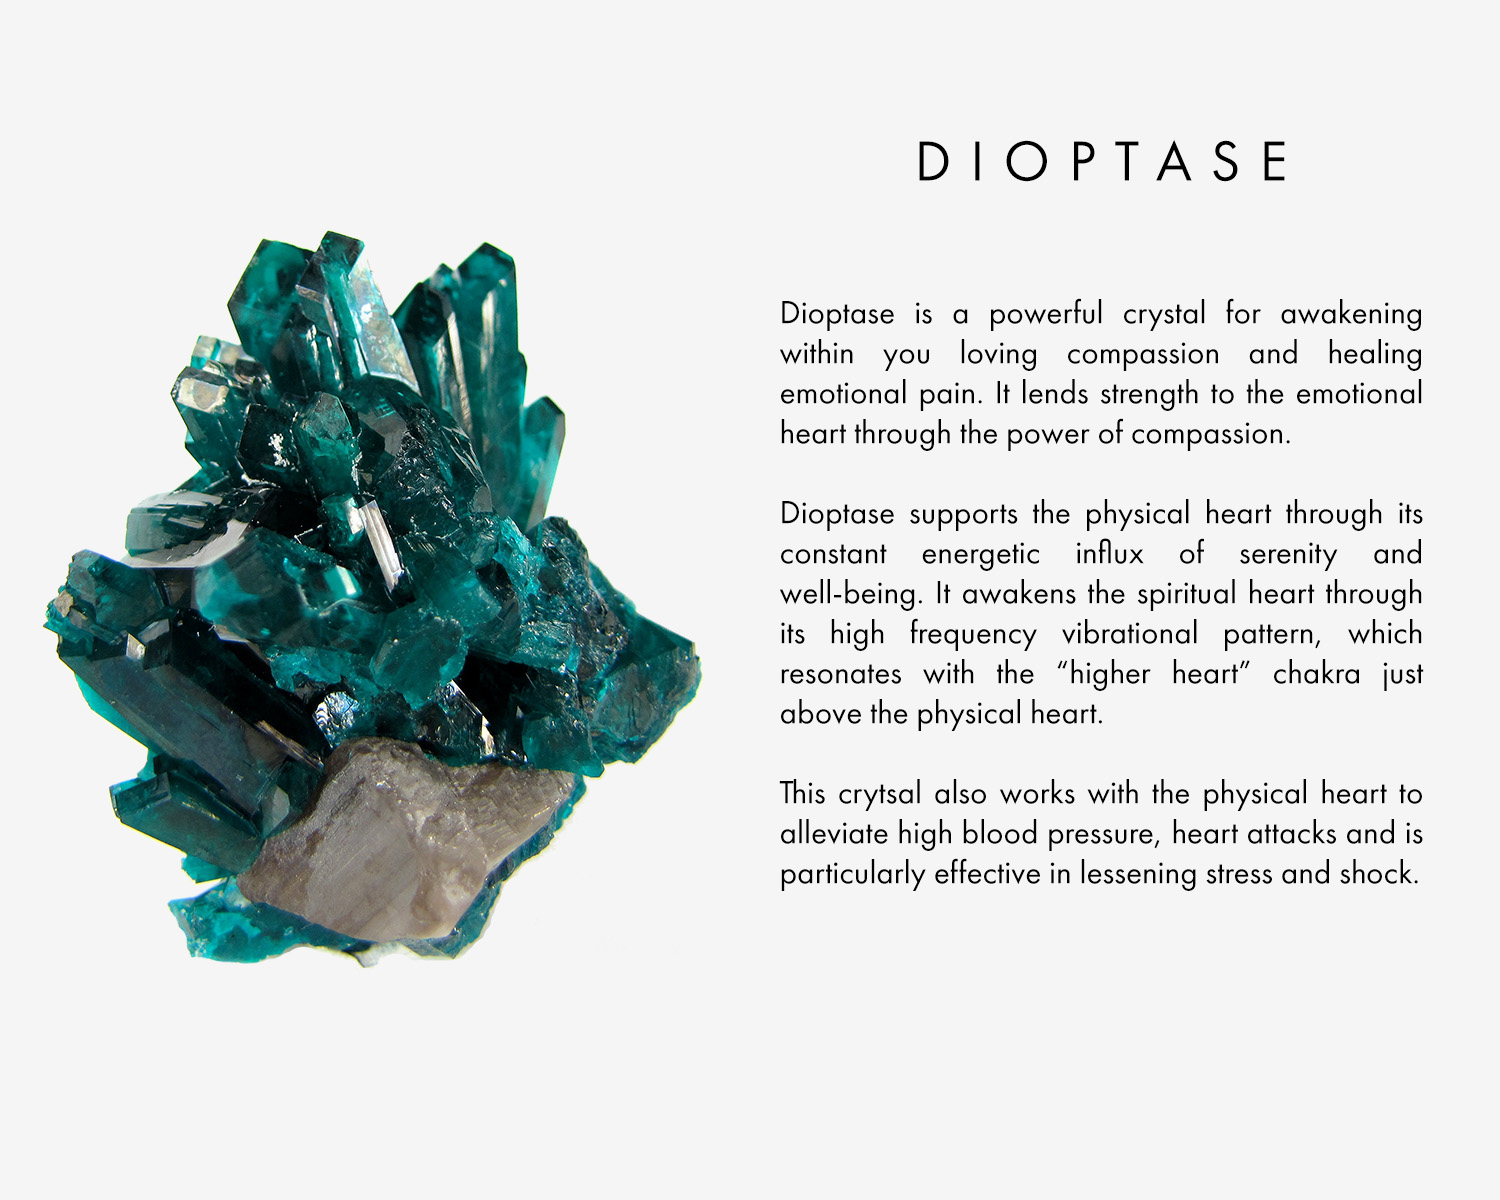 "Dioptase is a powerful crystal for awakening within you loving compassion and healing emotional pain. It lends strength to the emotional heart through the power of compassion. Dioptase supports the physical heart through its constant energetic influx of serenity and well-being. It awakens the spiritual heart through its high frequency vibrational pattern, which resonates with the ""higher heart"" chakra just above the physical heart. Dioptase also works with the physical heart to alleviate high blood pressure, heart attacks and is particularly effective in lessening stress and shock."